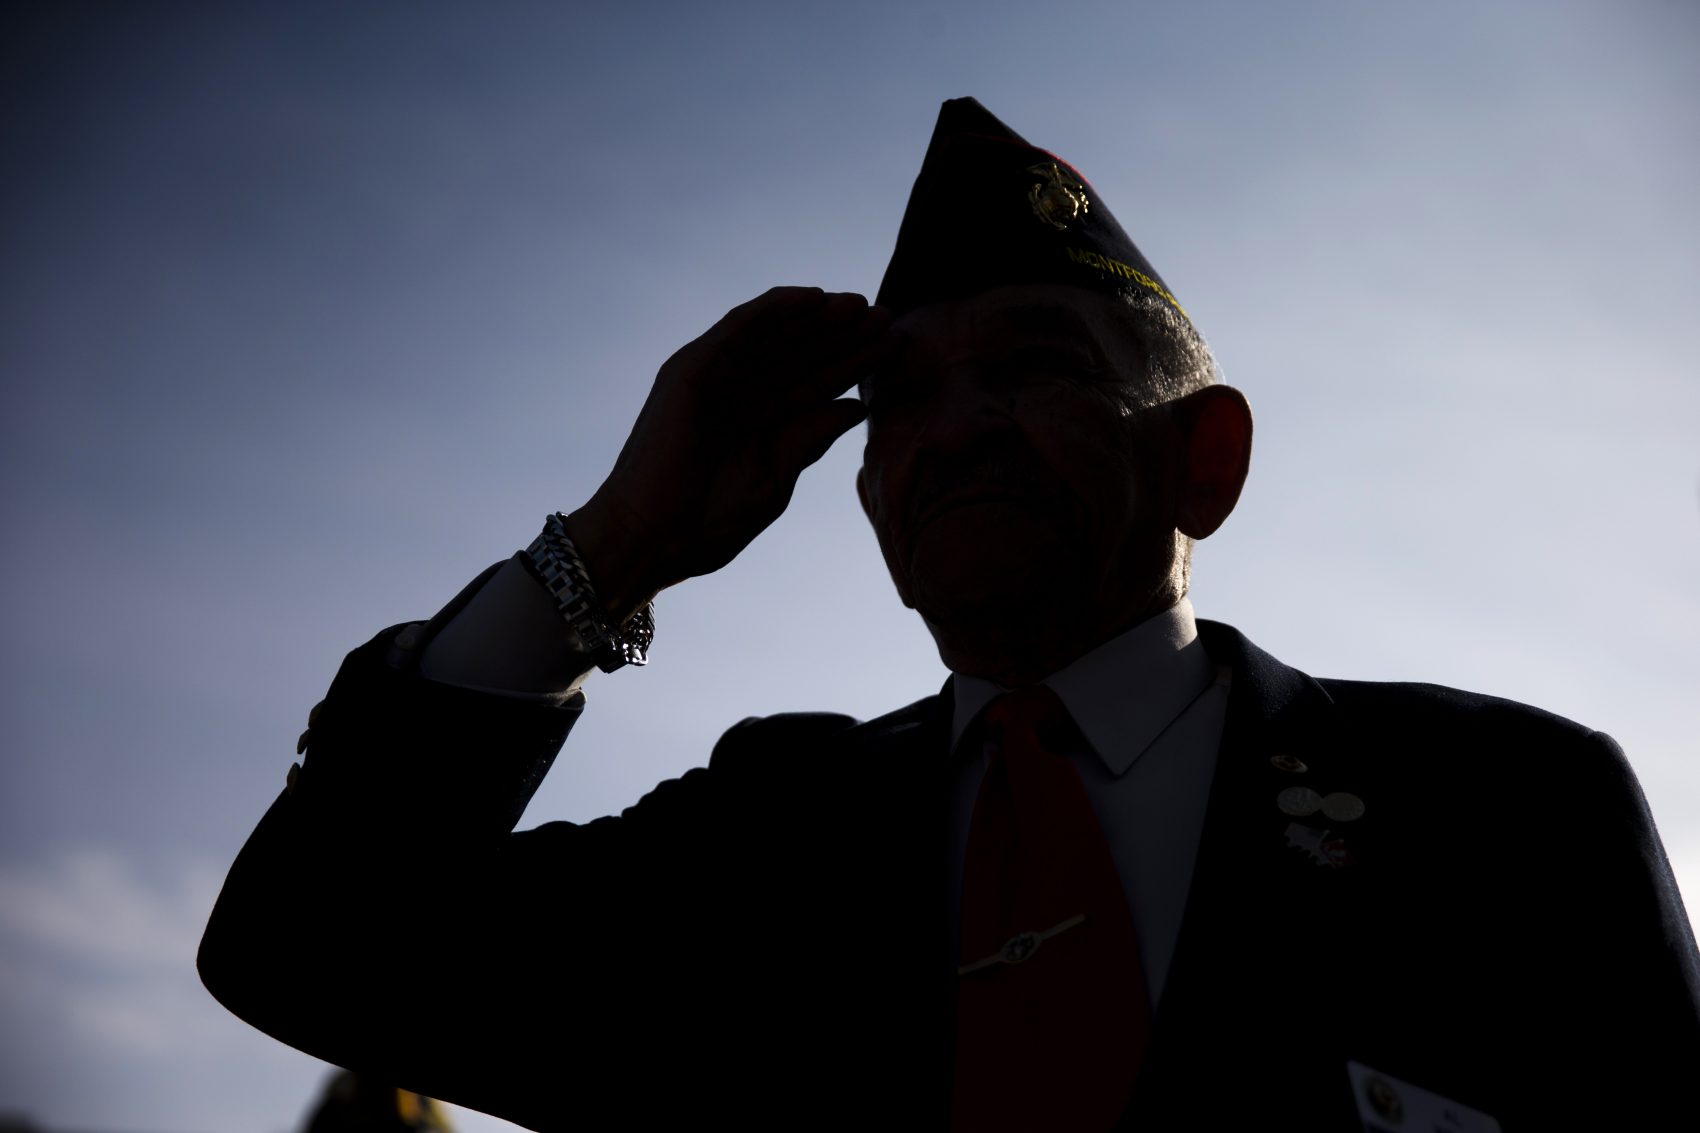 Al Willis, a Montford Point Marine, salutes during a ceremony on Veterans Day, Tuesday, Nov. 11, 2014, at the The All Wars Memorial to Colored Soldiers and Sailors in Philadelphia. (Matt Rourke/AP)